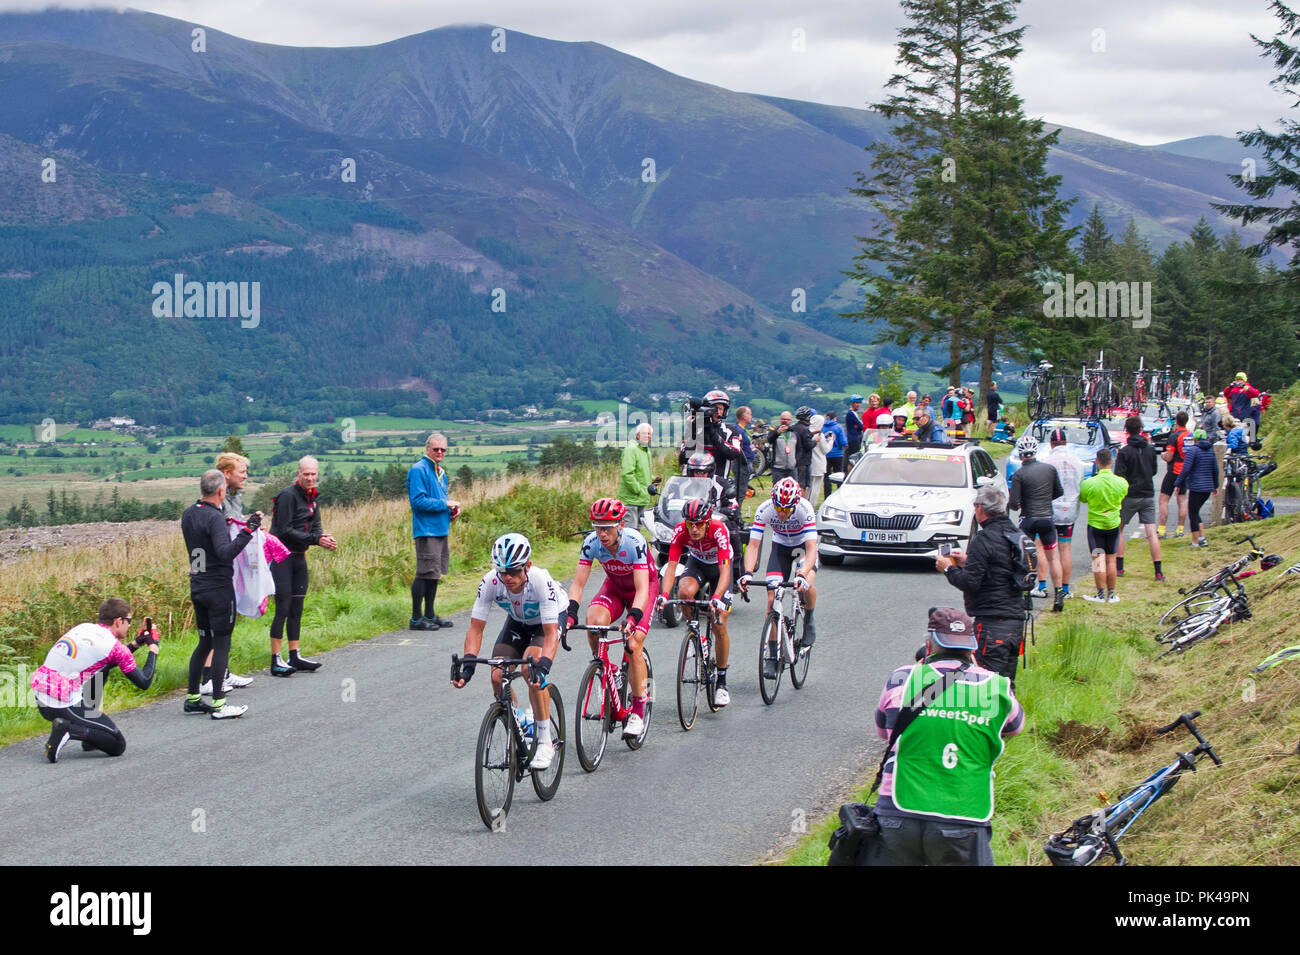 Stage 6, Tour of Britain 2018, 7 September. Breakaway on 1st ascent of Whinlatter Pass, Vasil Kiryienko: Tony Martin, James Shaw and Connor Swift. - Stock Image